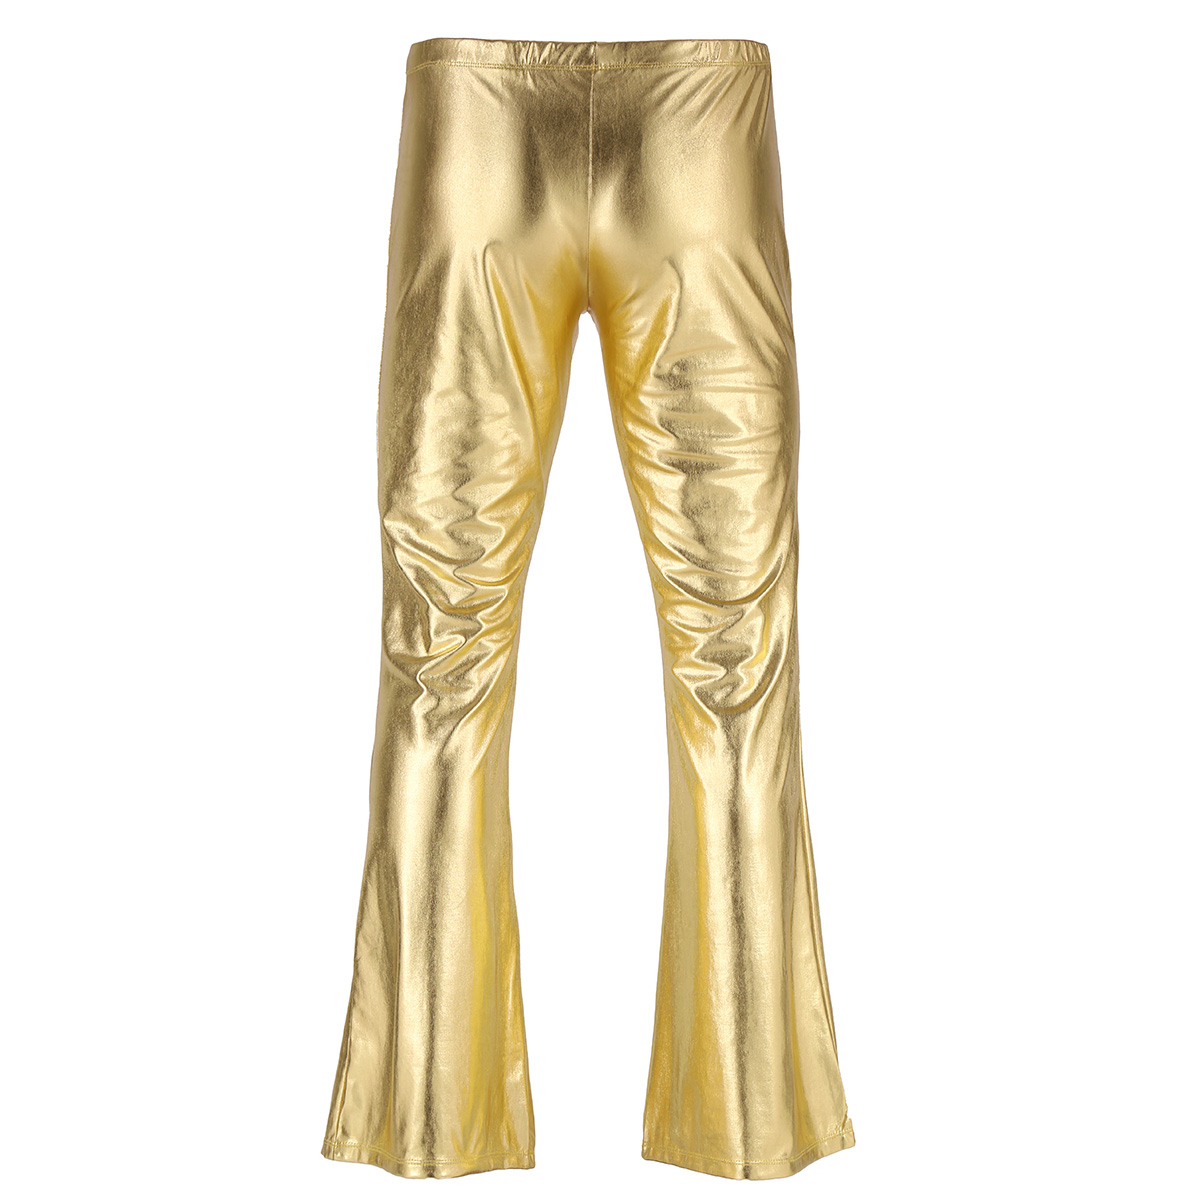 ChicTry Adults Mens Shiny Metallic Disco Pants with Bell Bottom Flared Long Pants Dude Costume Trousers for 70's Theme Parties 41